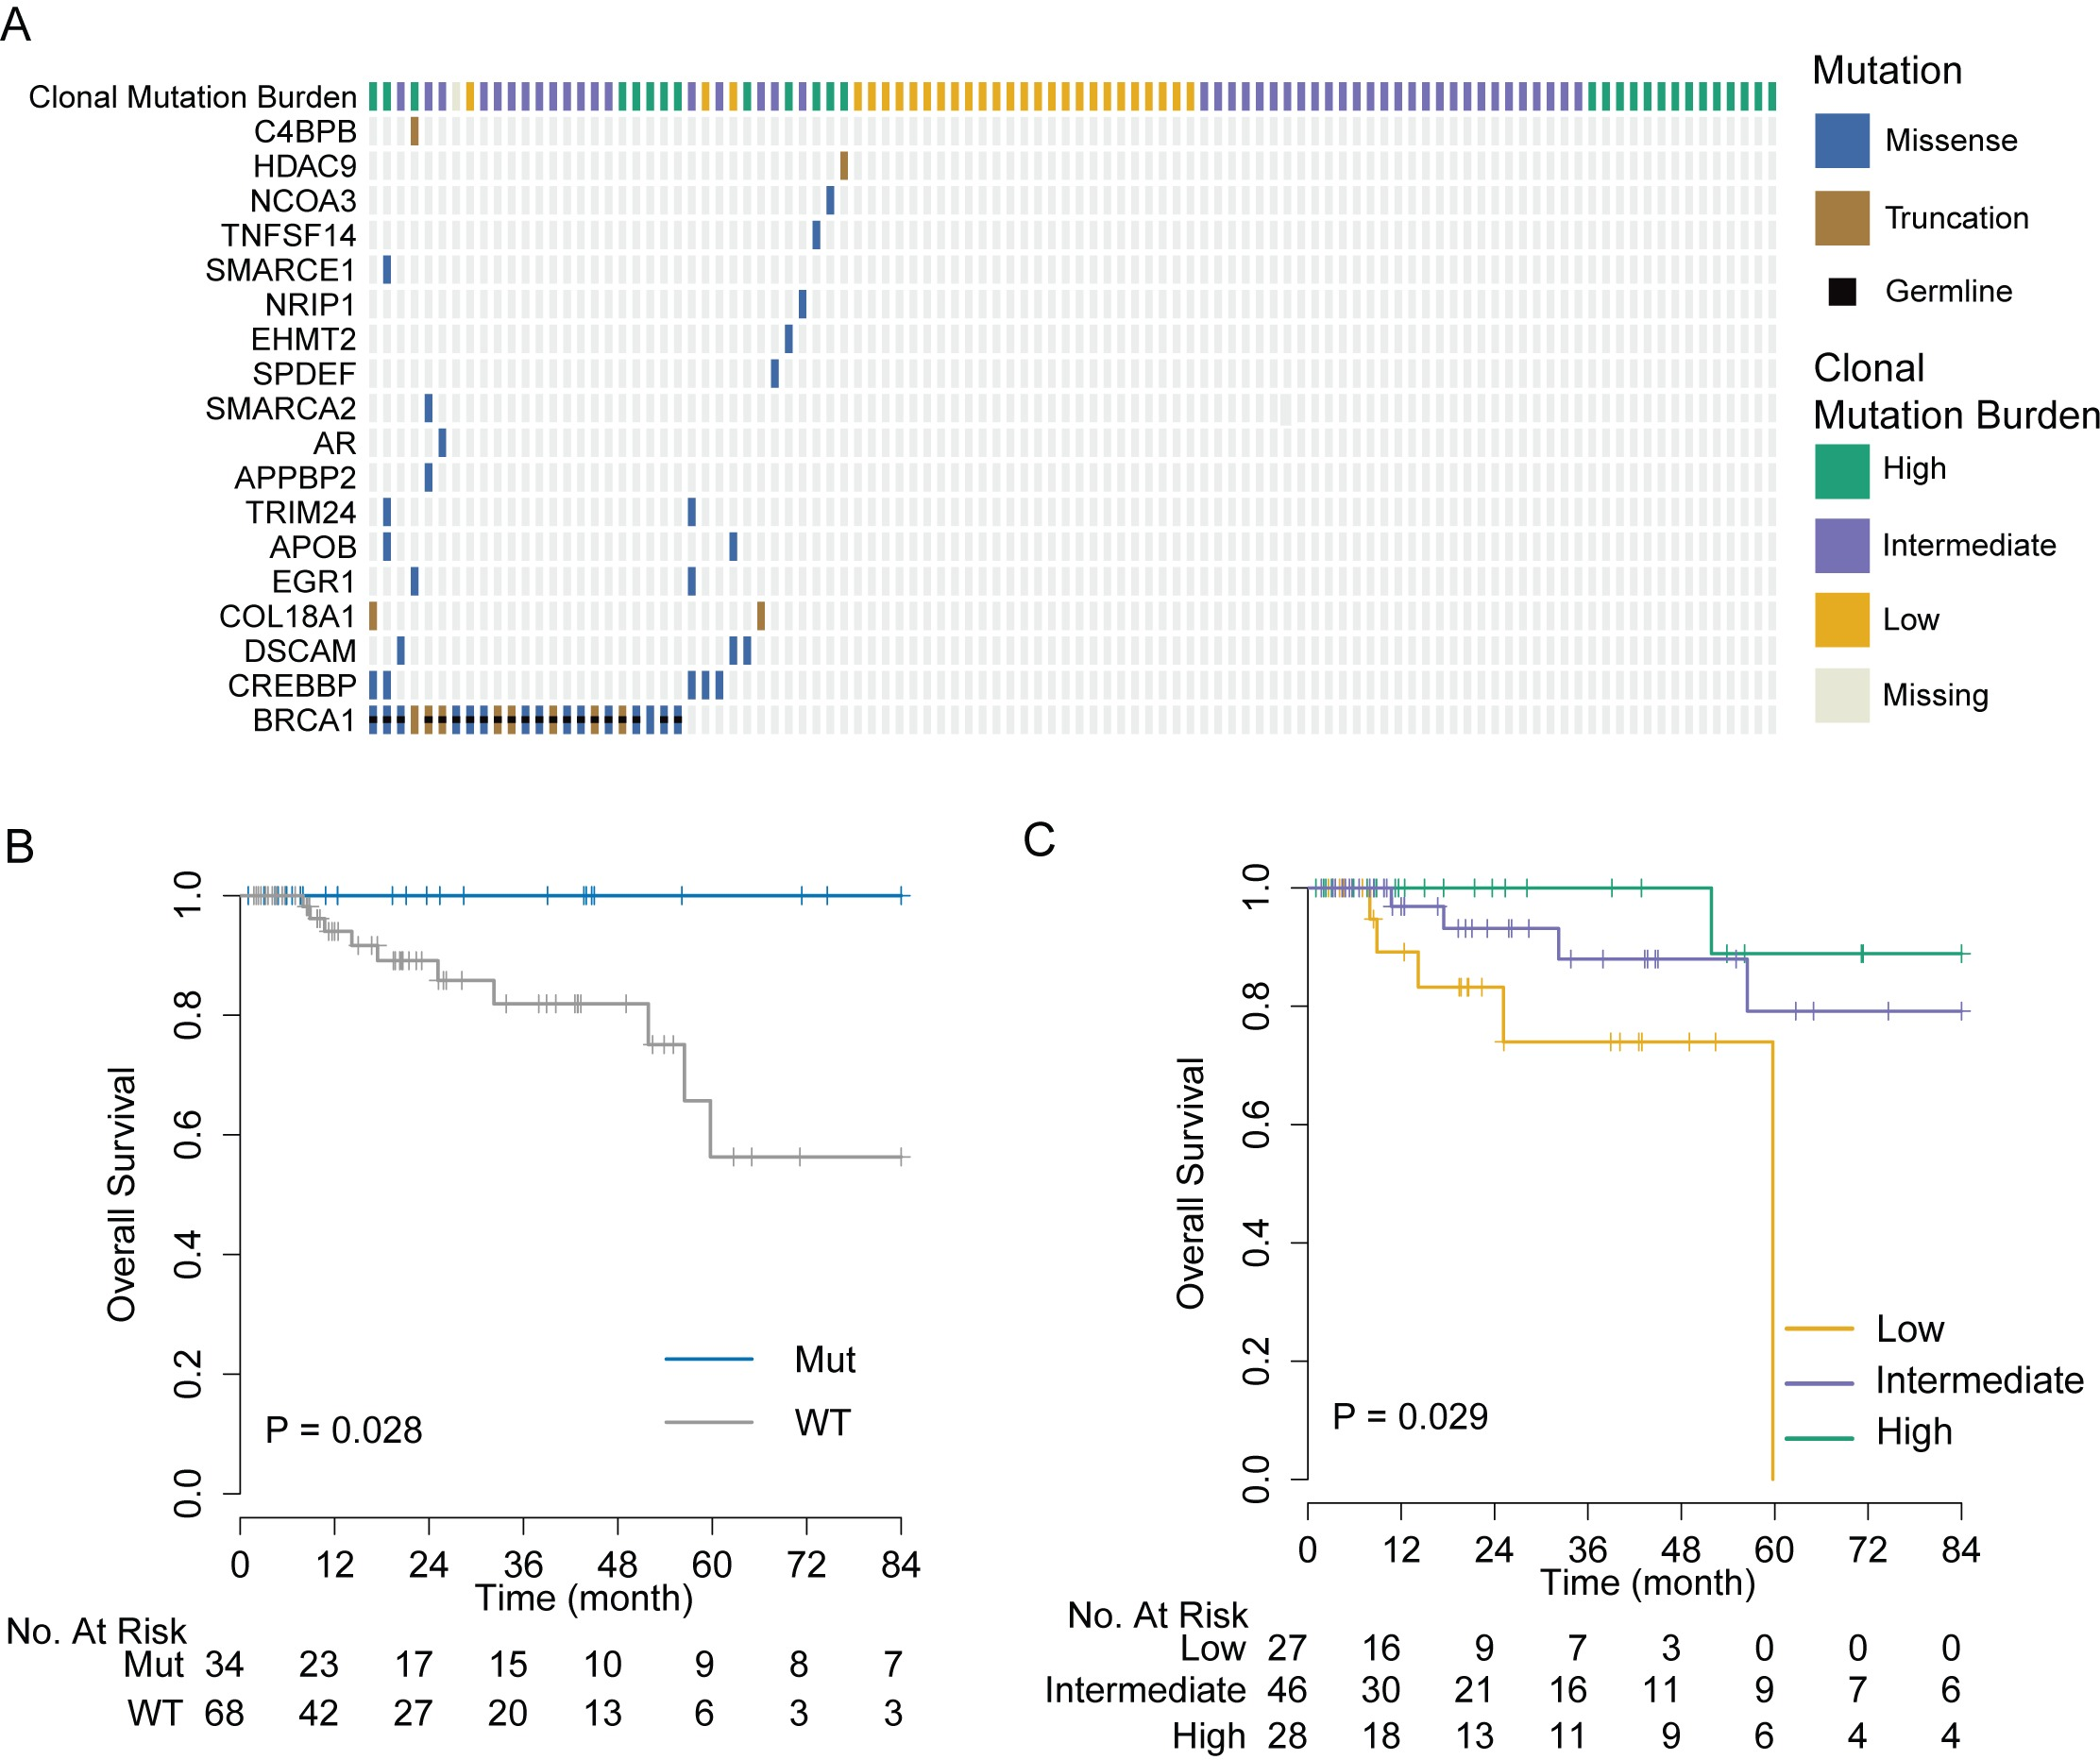 Validation of genomic markers of chemosensitivity in the TCGA triple negative breast cancer cohort.